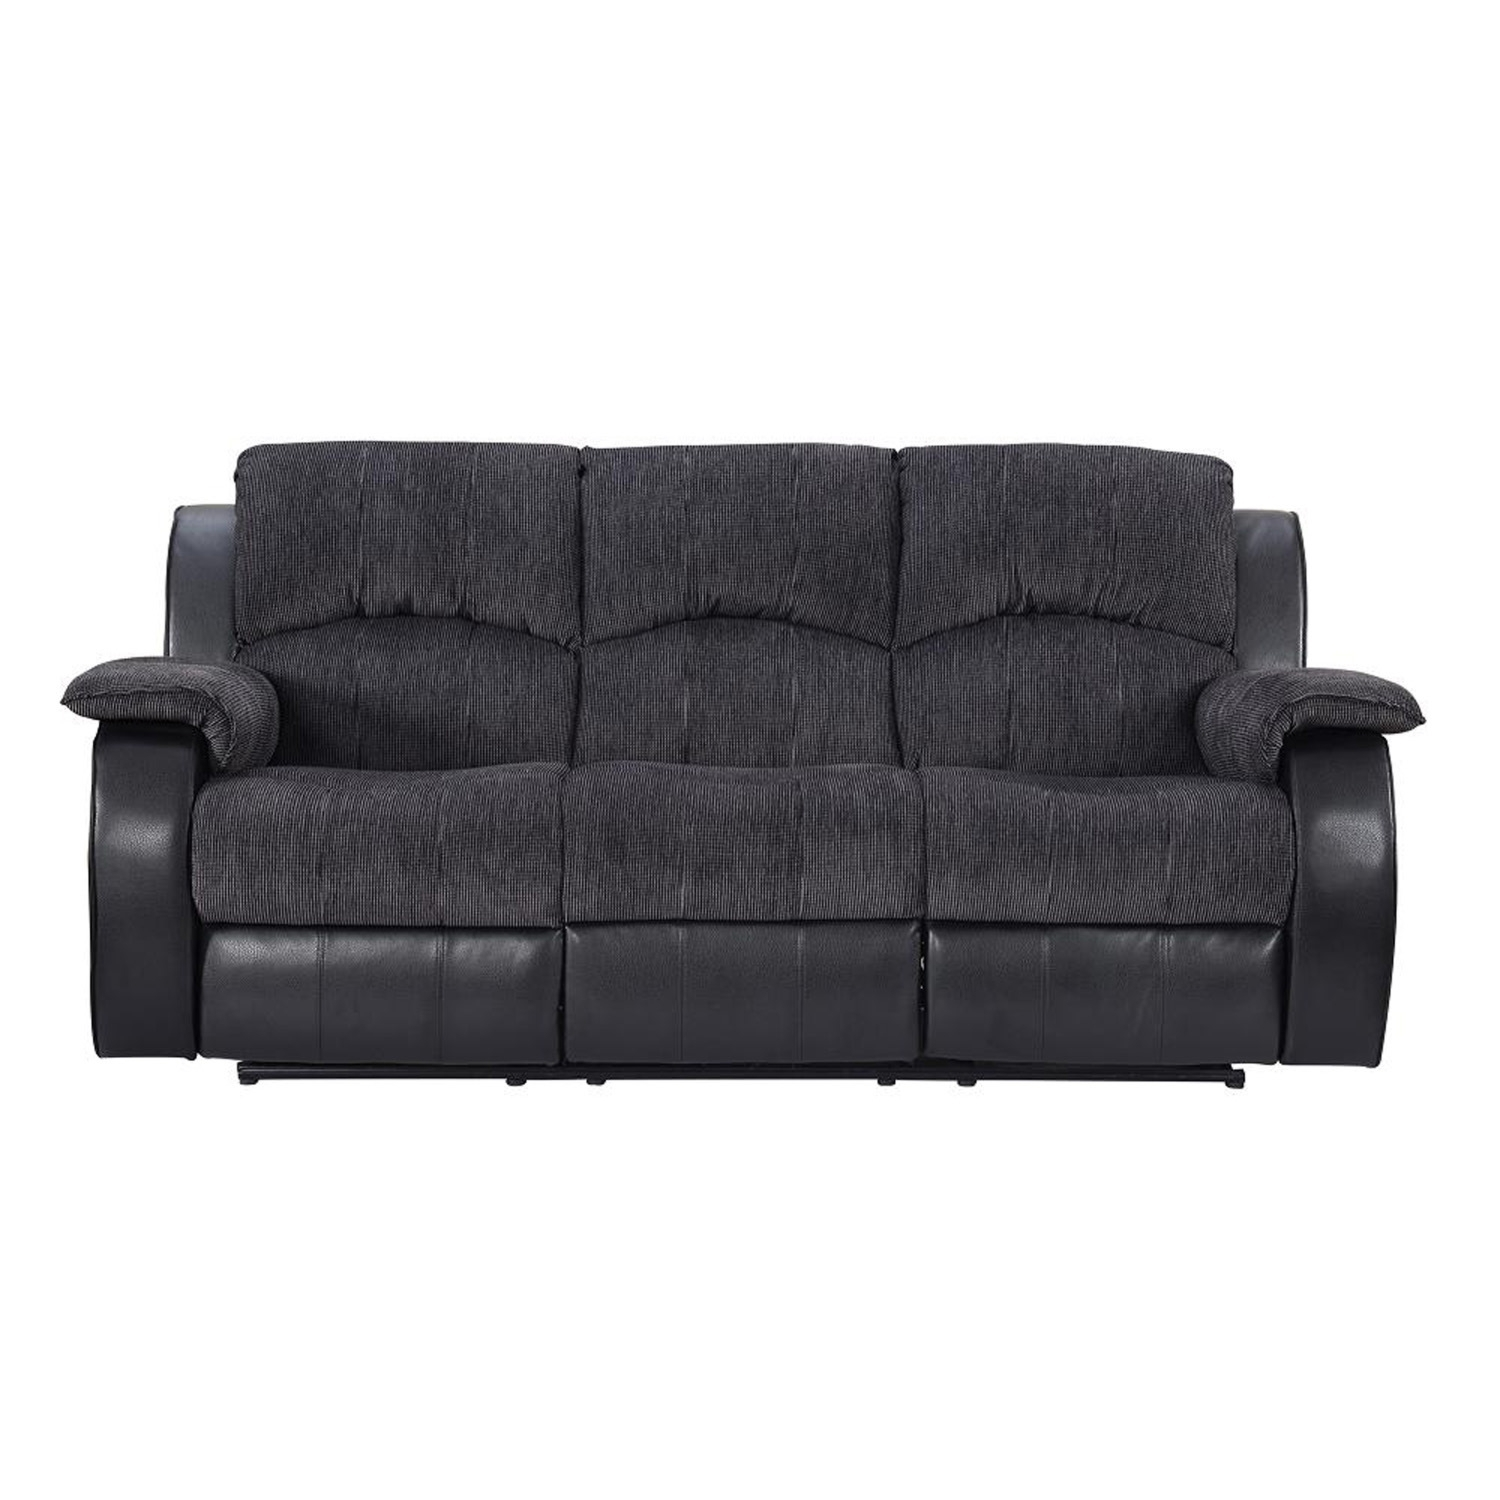 Recliner Sofas | The Range In Recliner Sofas (Image 7 of 10)